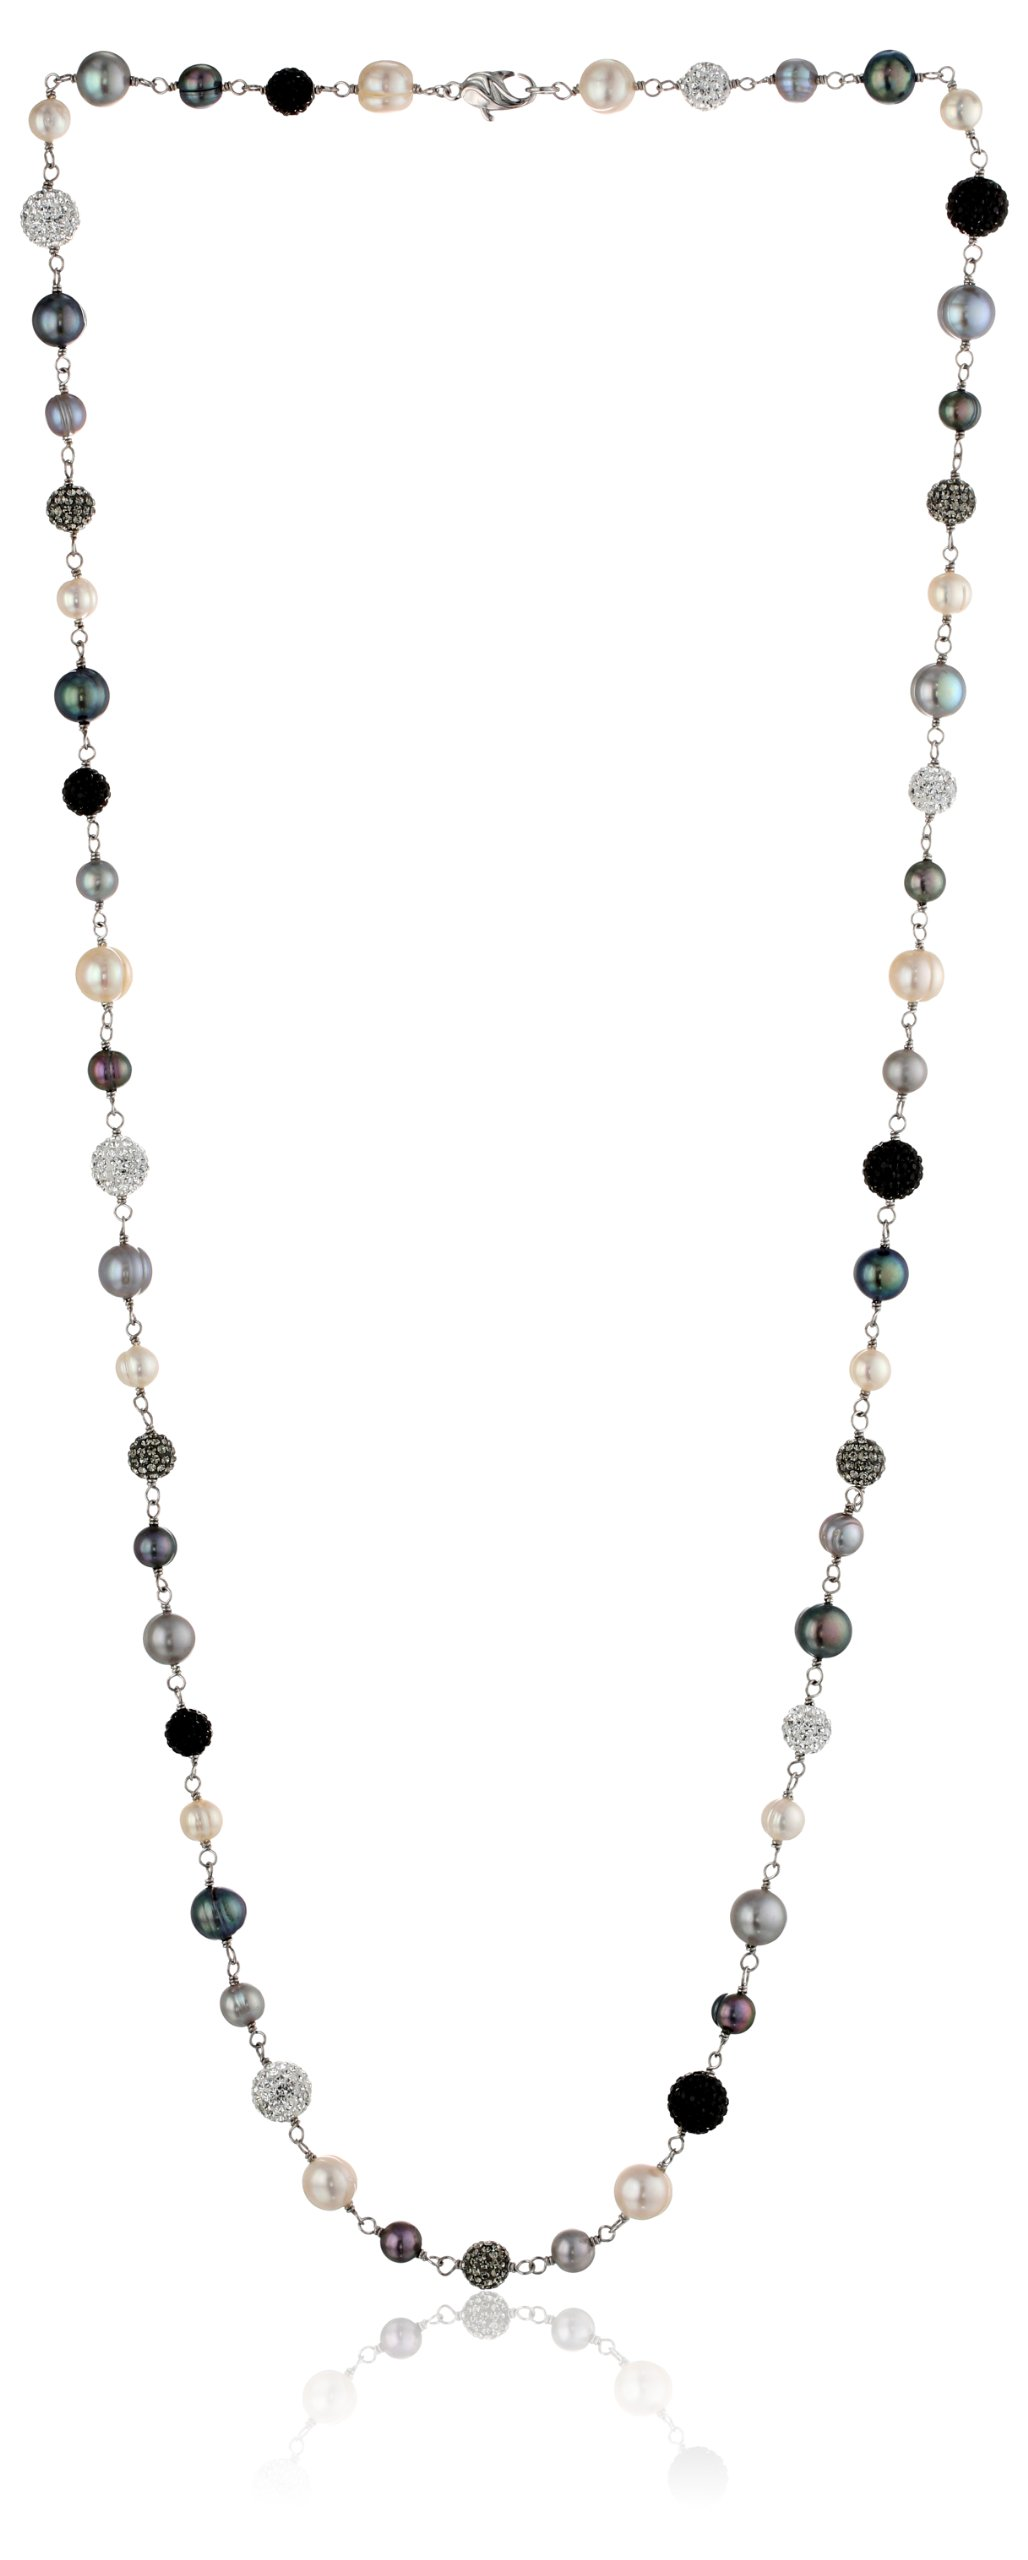 Honora ''Pop Star'' Freshwater Cultured Pearl, Sterling Silver and Pave Crystal Bead Necklace, 36''